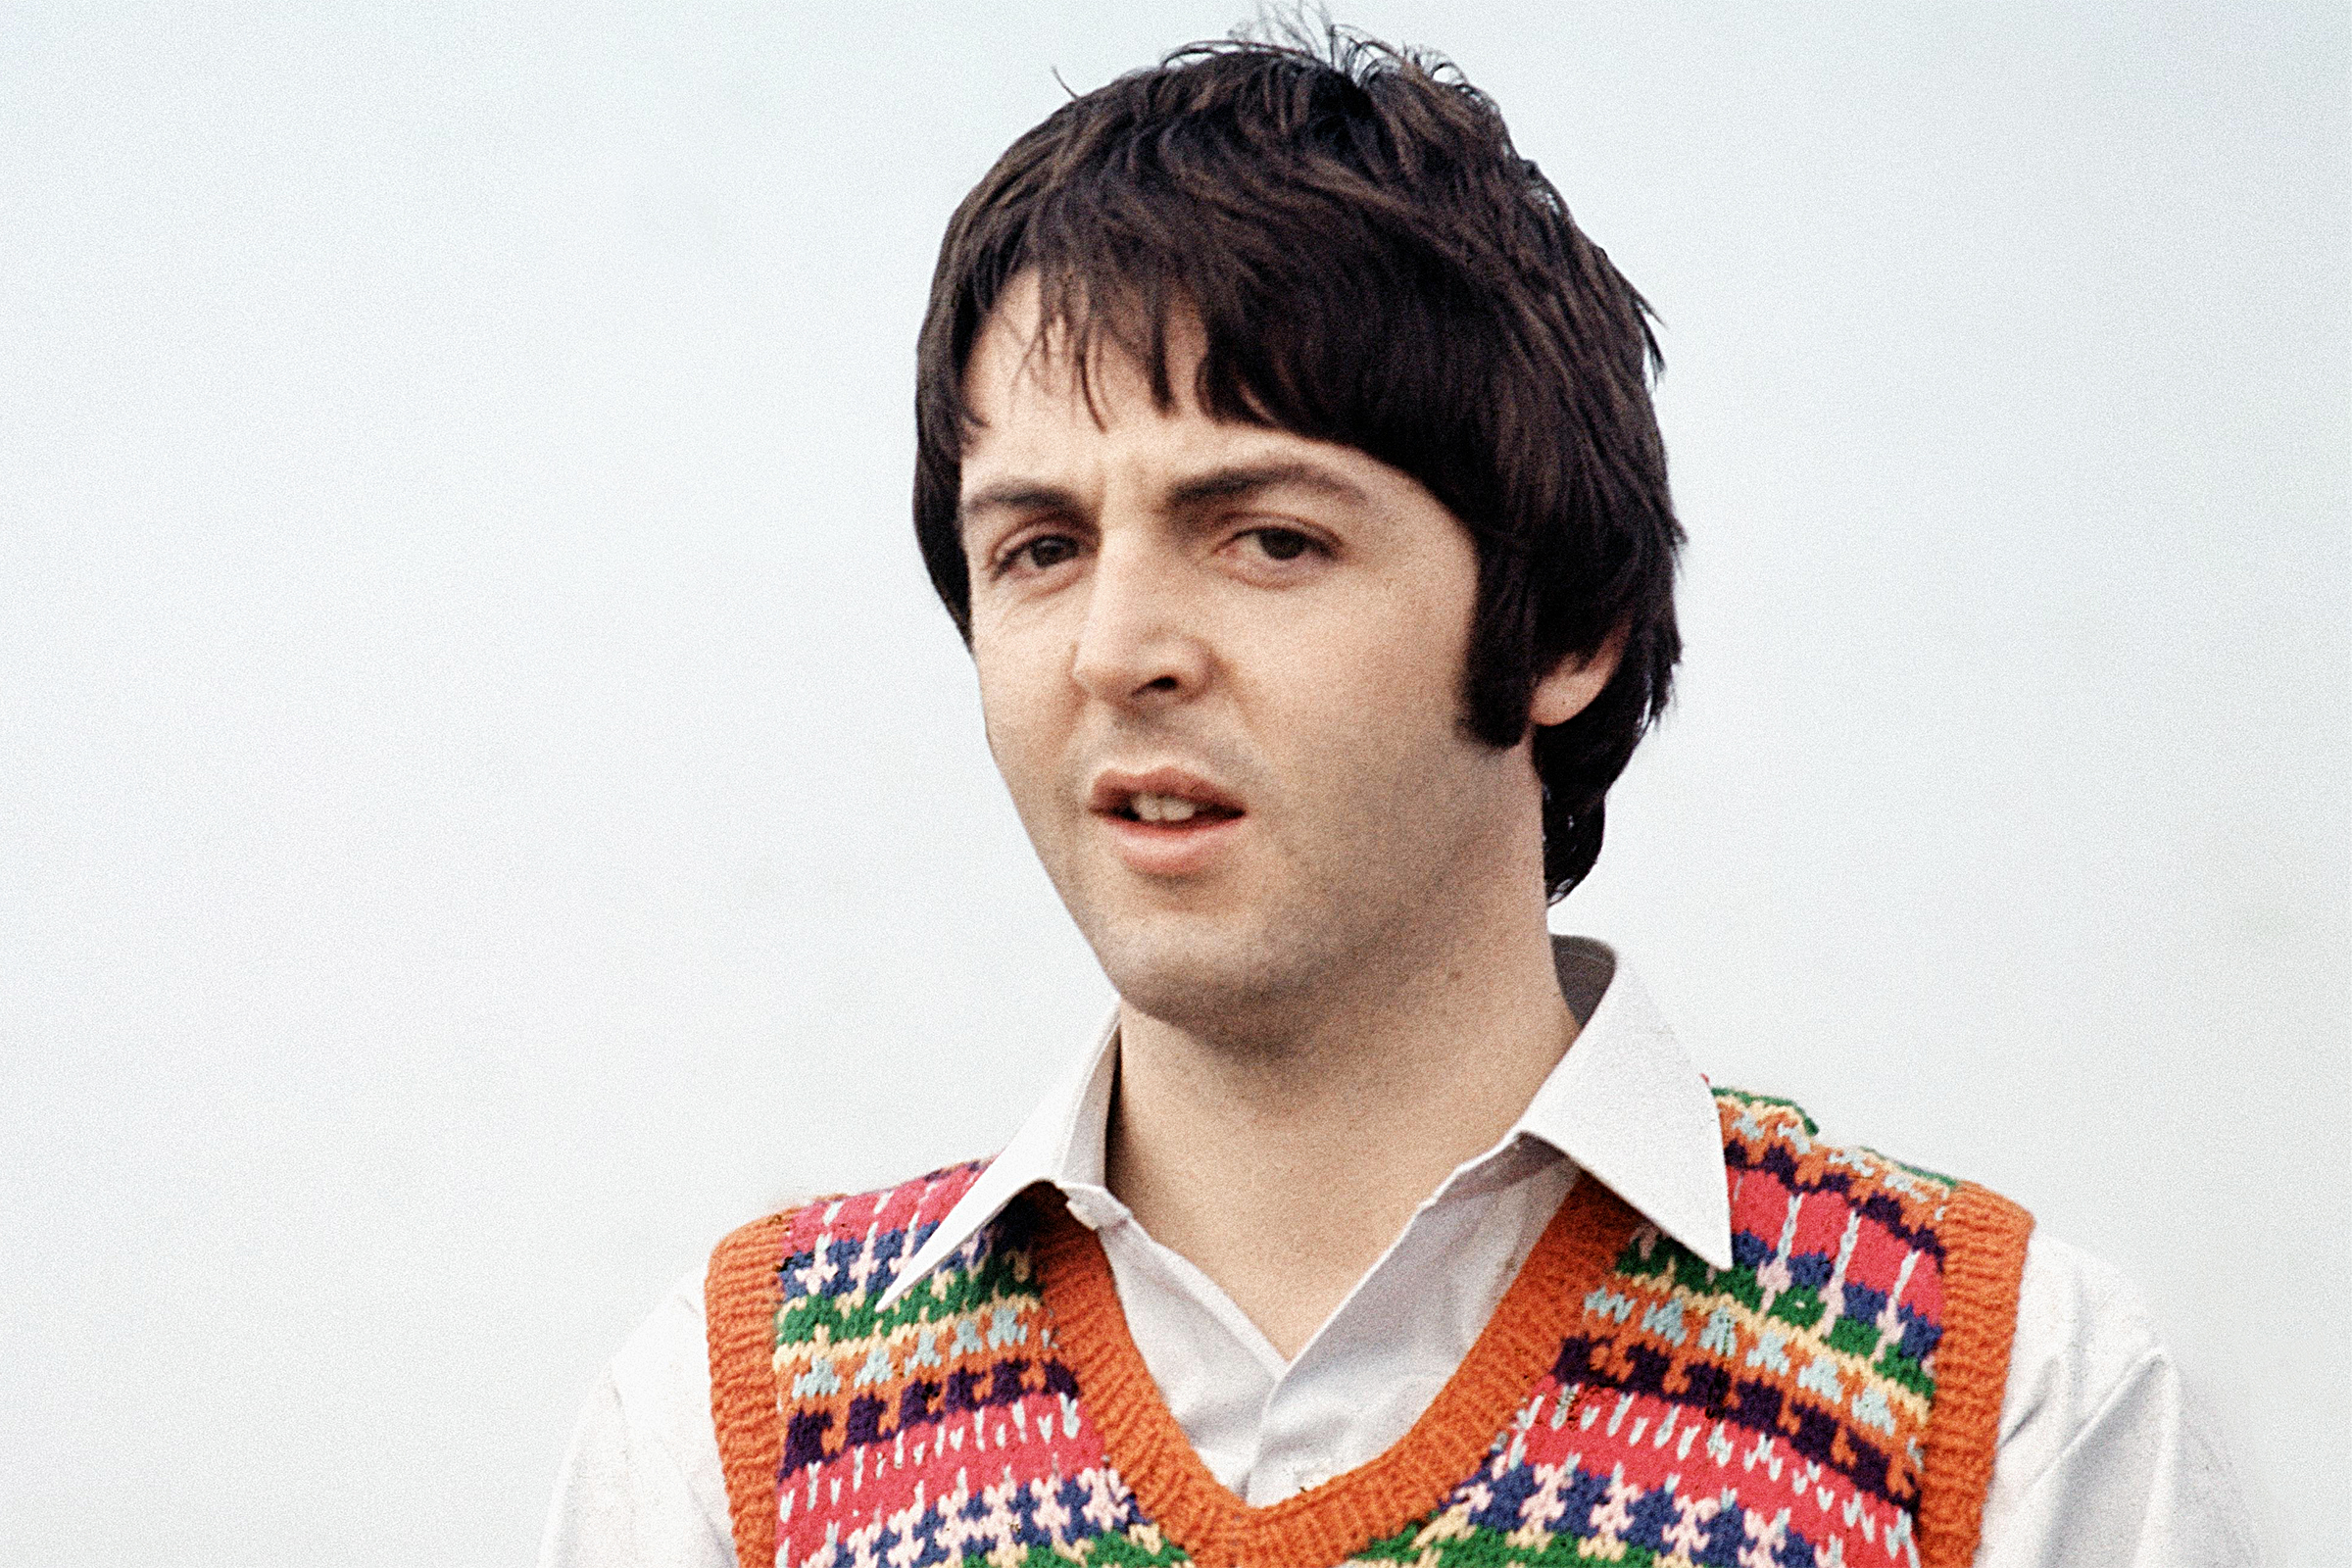 'Paul Is Dead': The Bizarre Story of Music's Most Notorious Conspiracy Theory